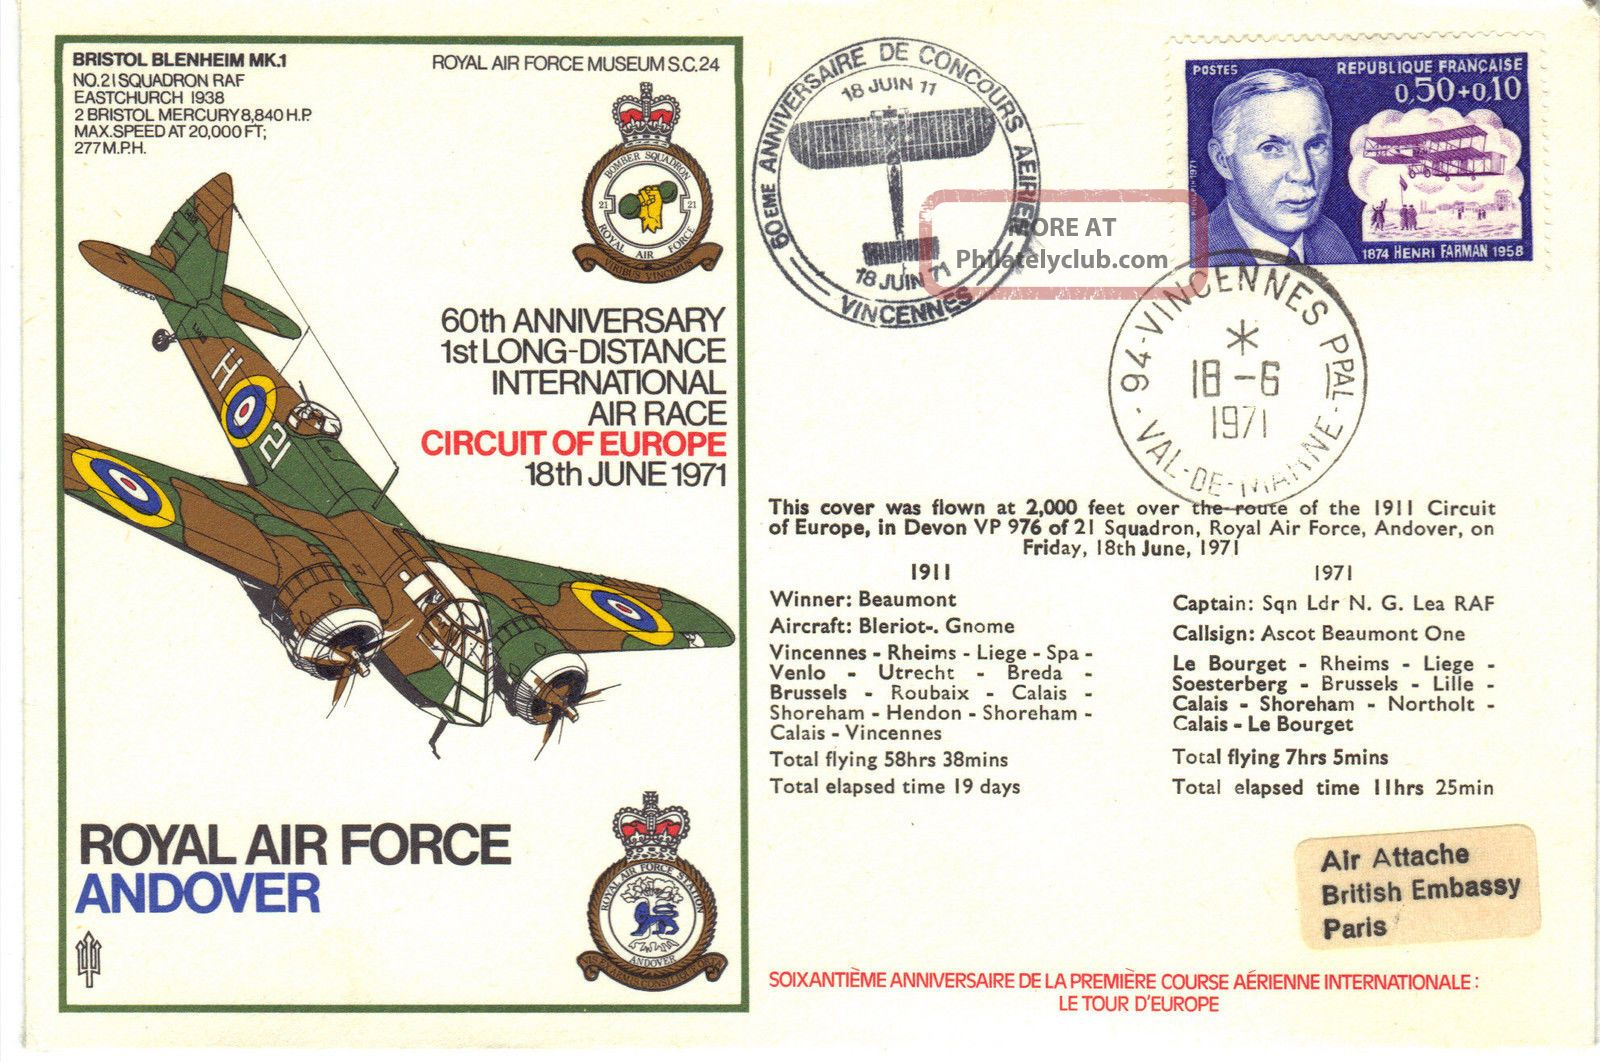 1971 Raf Sc24 60th Anniv 1st Long - Distance Air Race Circuit Europe Cover Re:fp37 Transportation photo